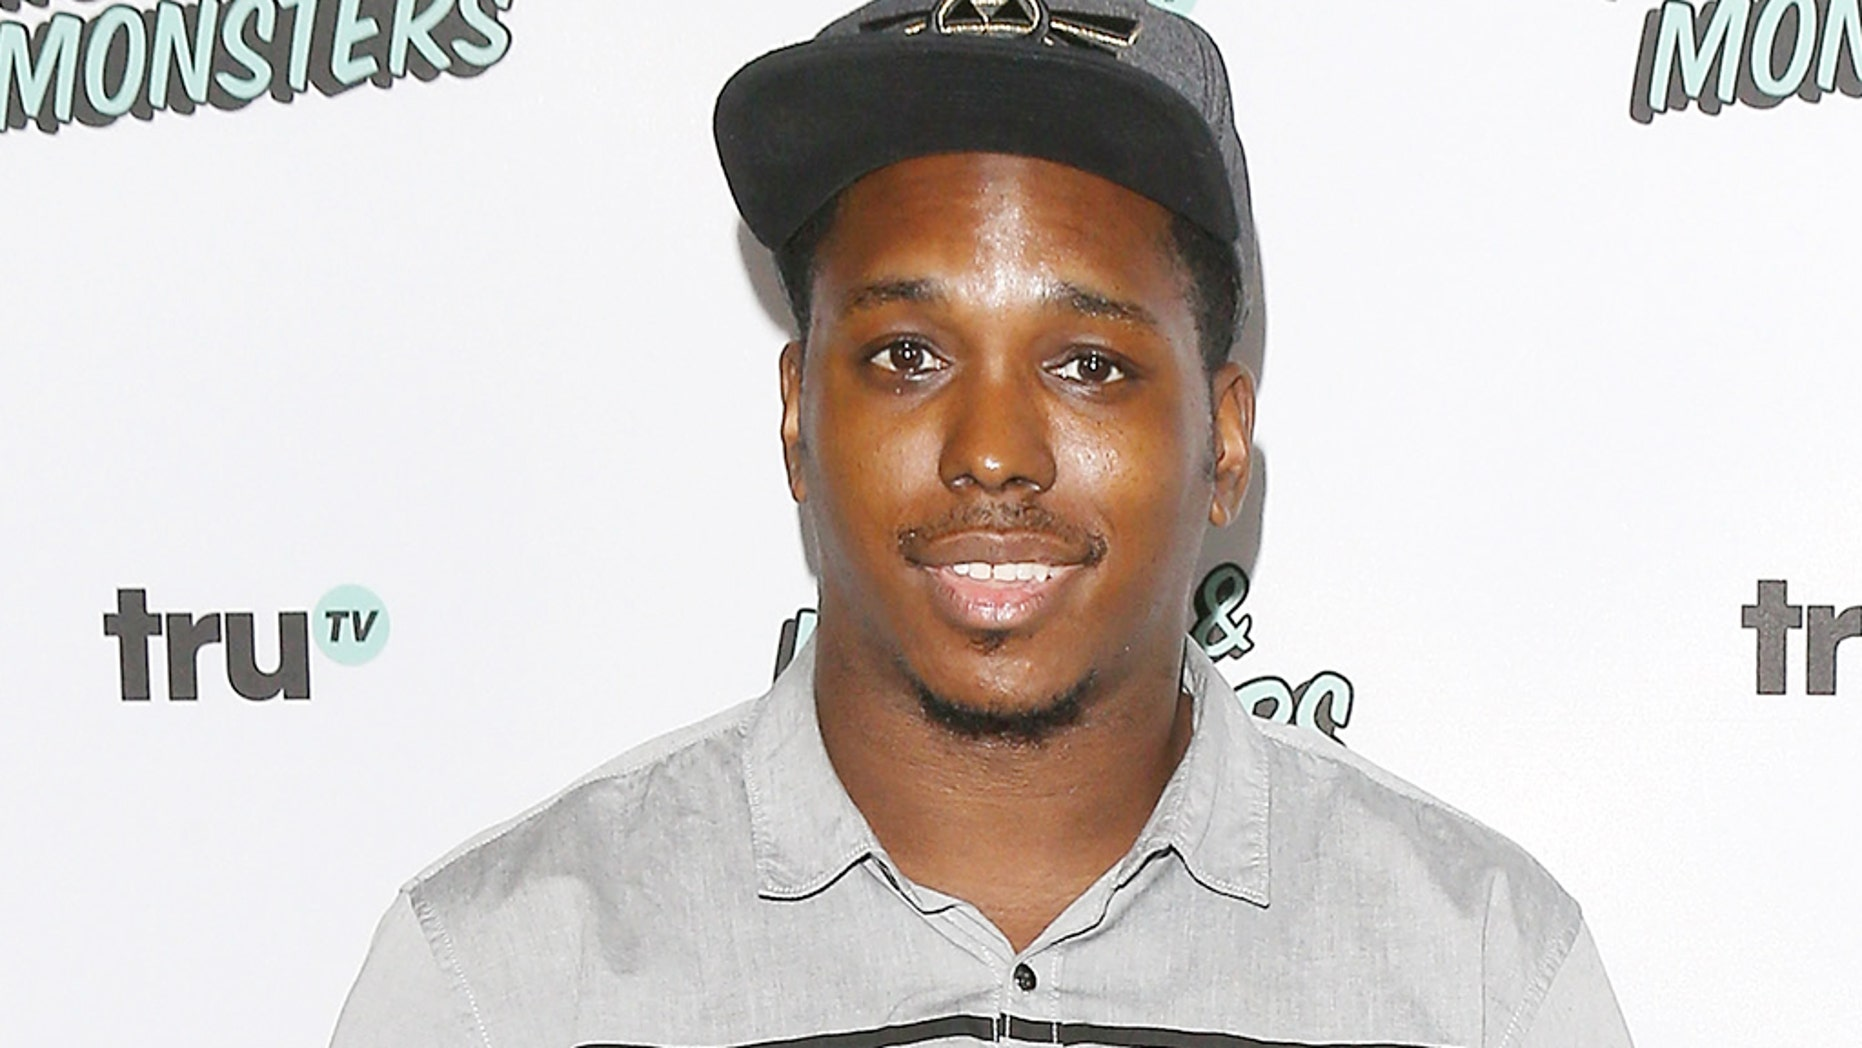 Comedian Kevin Barnett has died, according to multiple reports.